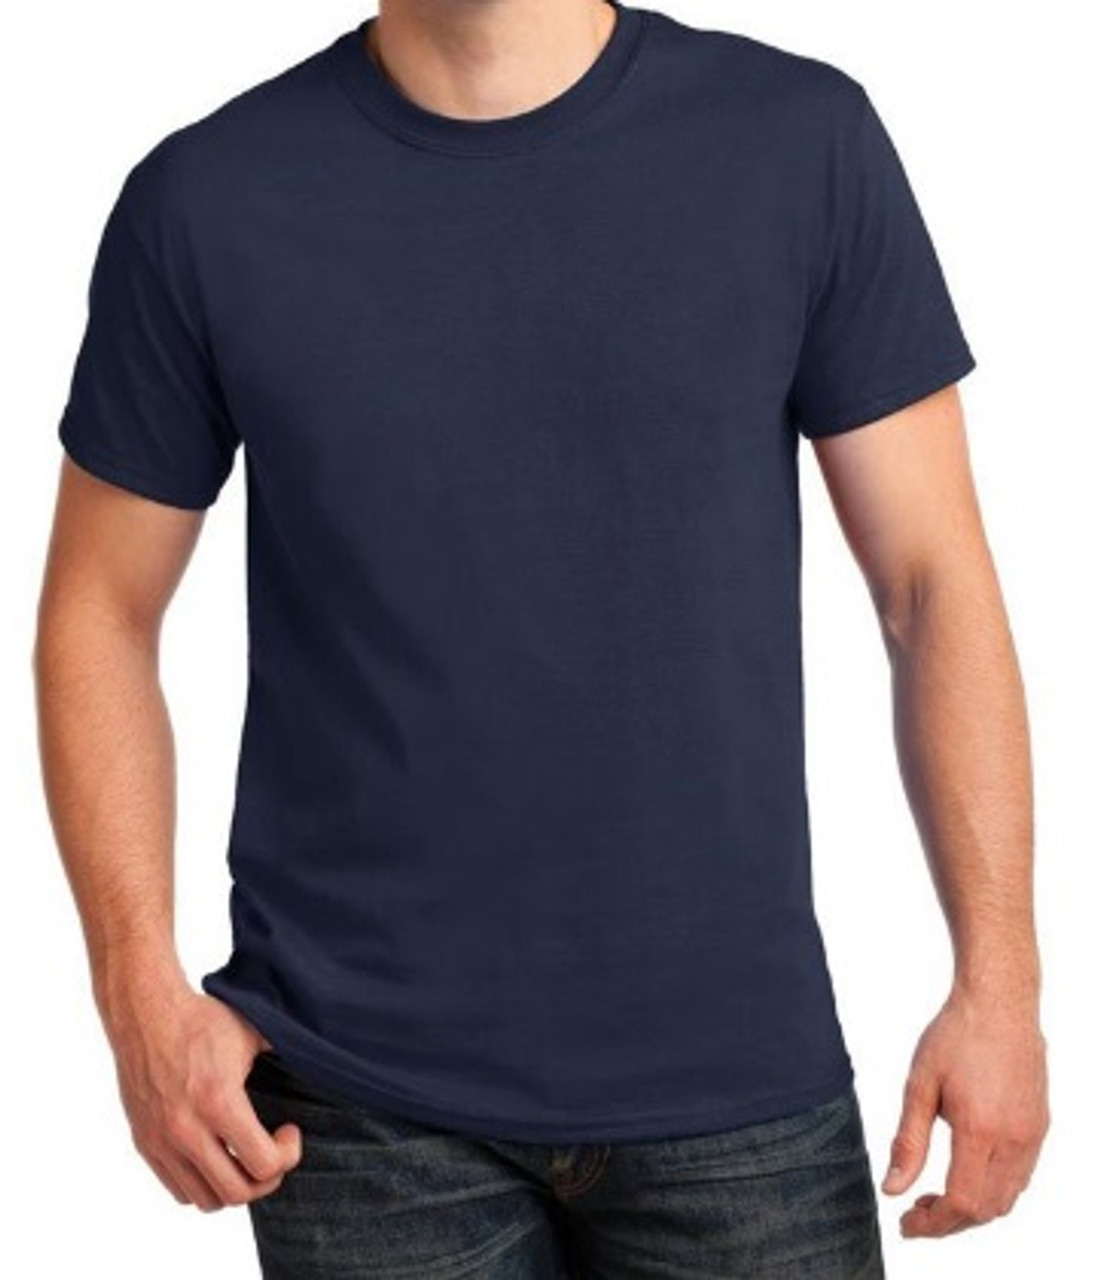 US Military Navy Blue T-Shirt, Orders Of $100.00+